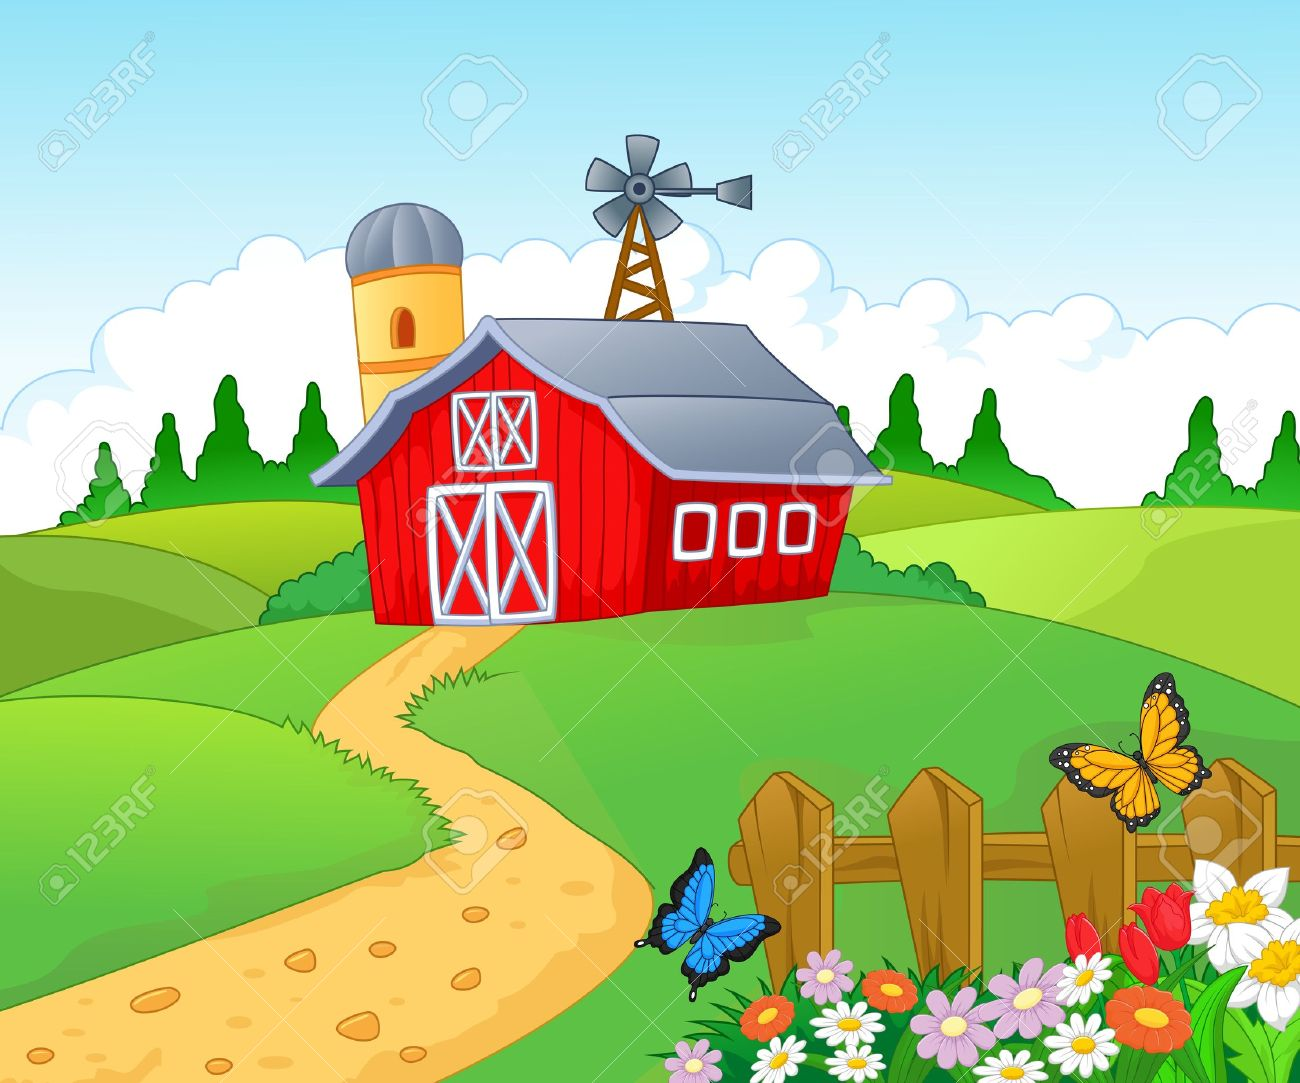 (http://previews.123rf.com/images/tigatelu/tigatelu1404/tigatelu140400174/27656550-Farm-cartoon-background--Stock-Vector-landscape.jpg)